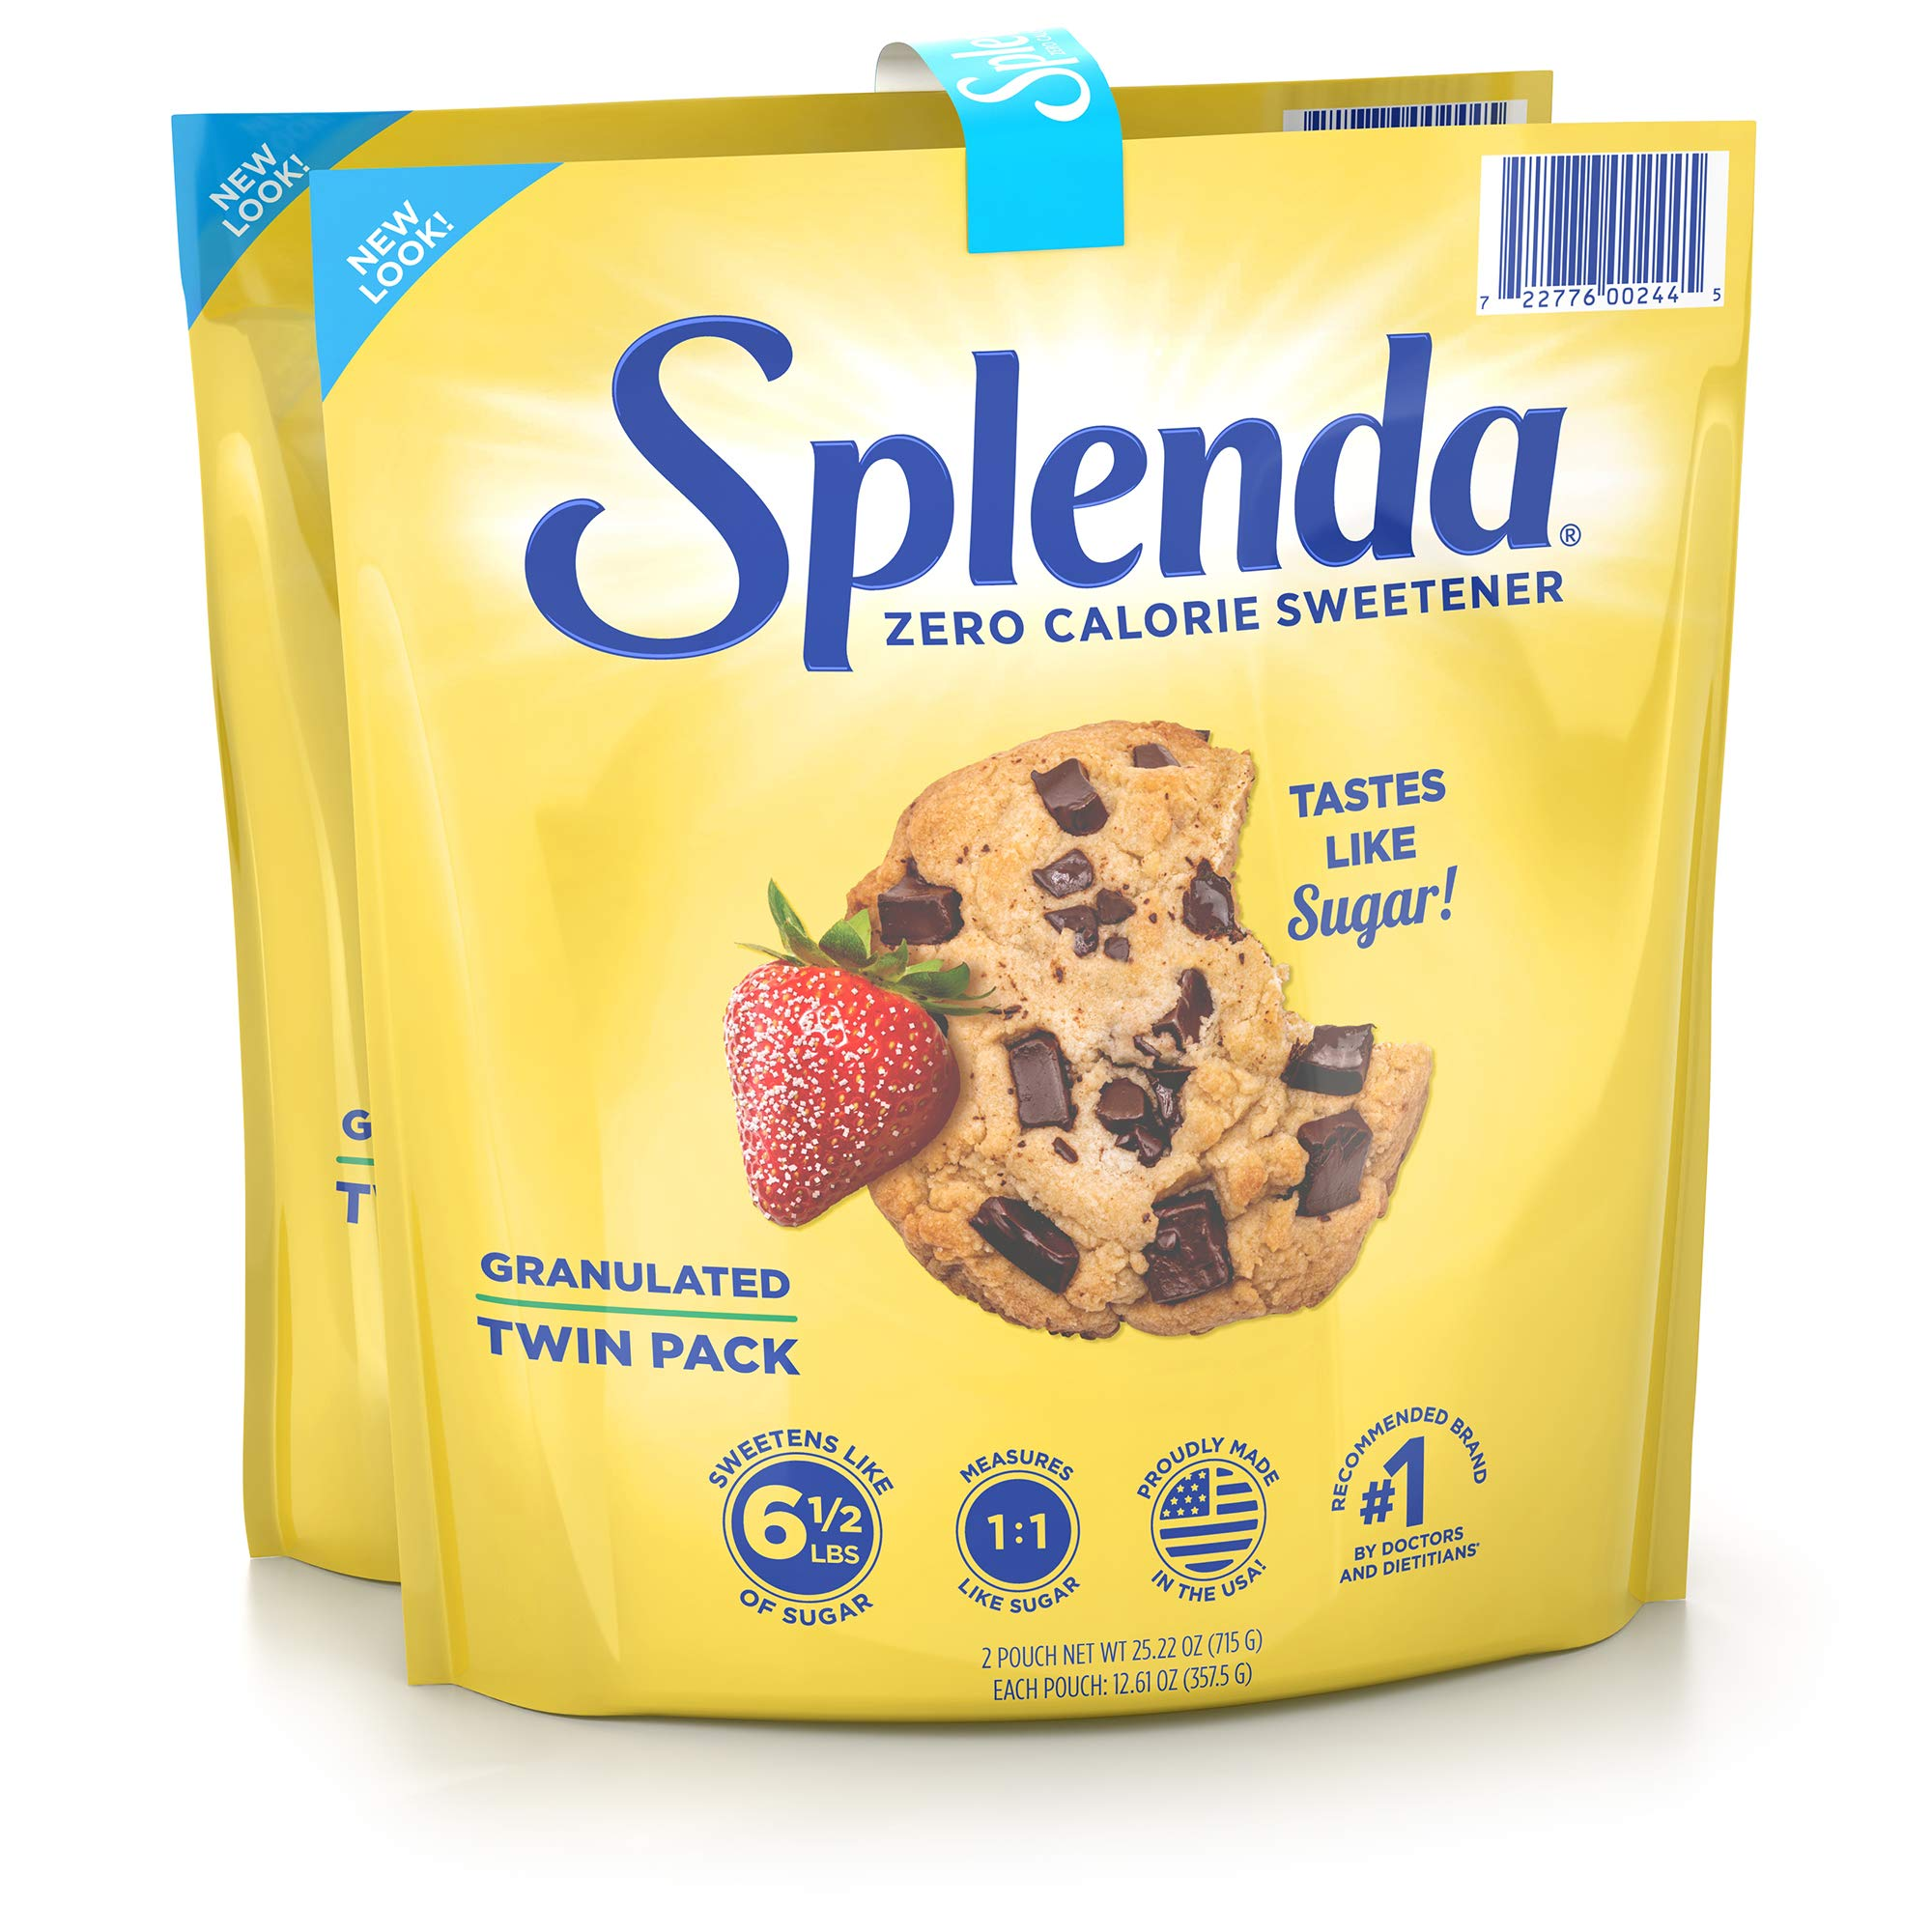 SPLENDA No Calorie Sweetener, Granulated Sugar Substitute, Resealable Twin Pack Bags, 25.22 Ounce (Each Pouch: 12.61 oz)